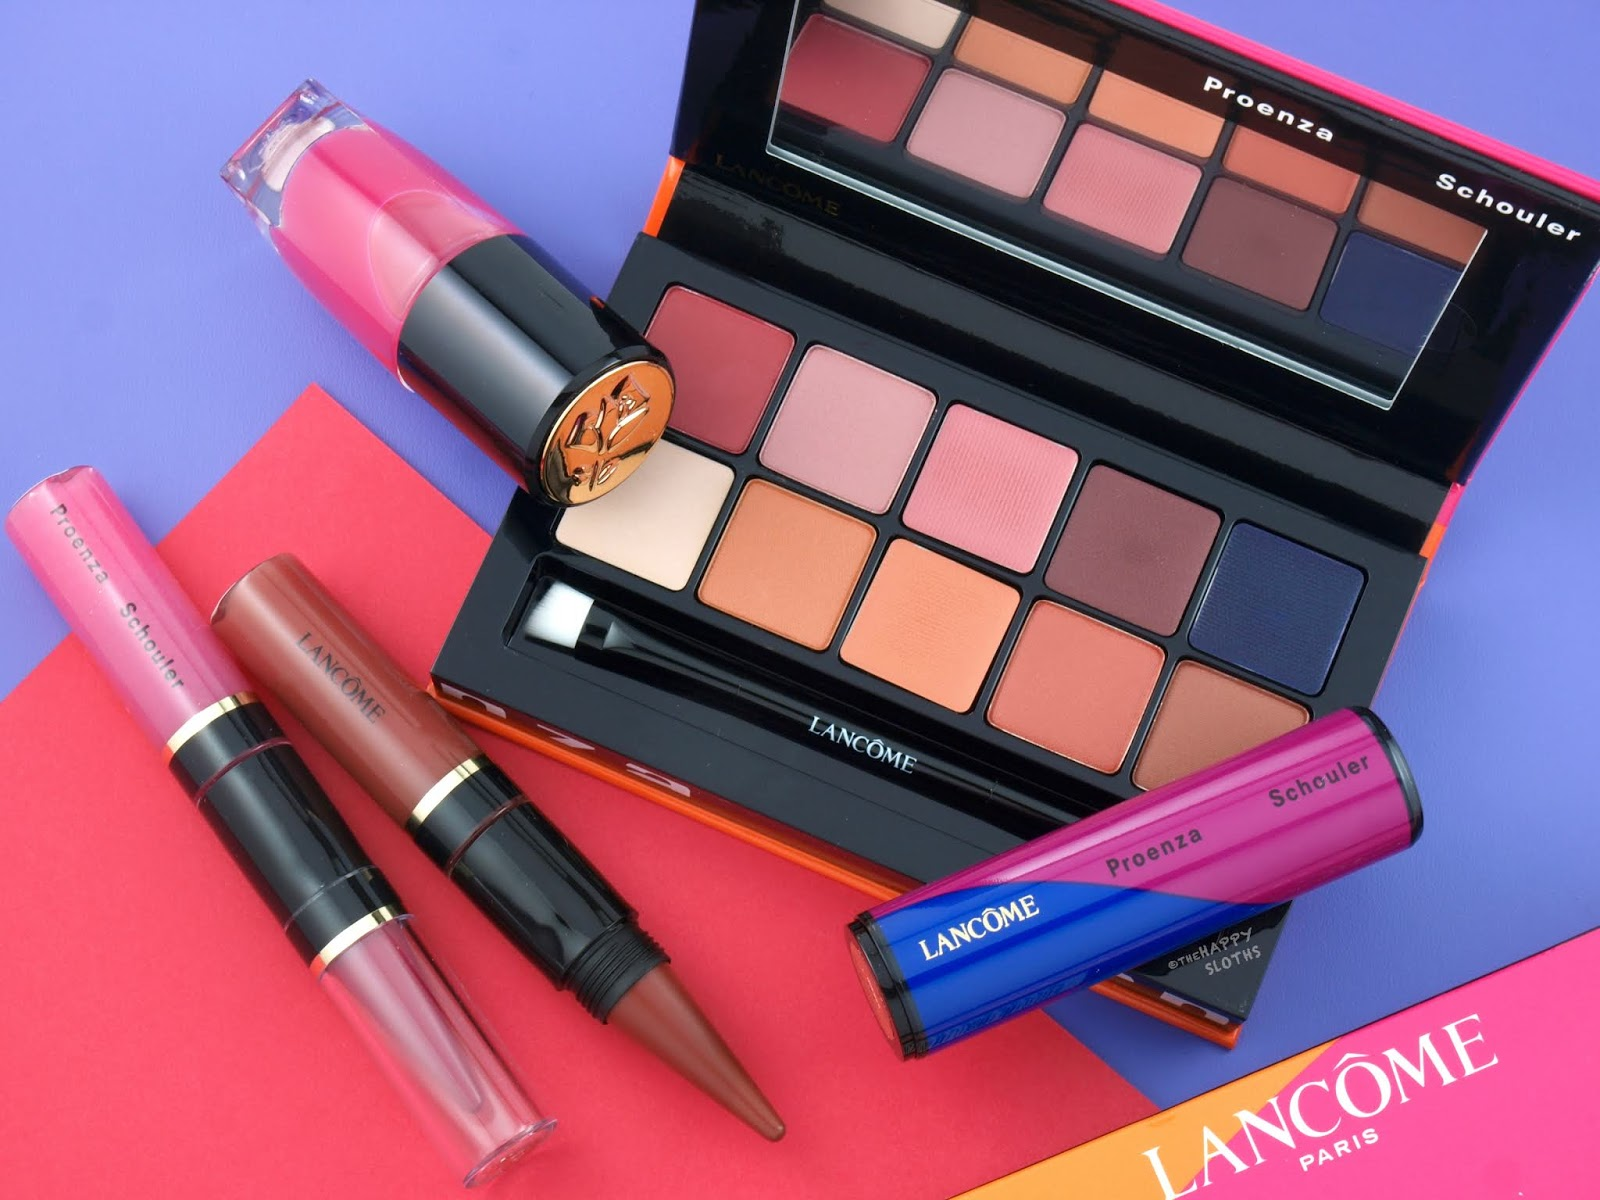 Lancome | Proenza Schouler Fall 2018 Collection: Review and Swatches